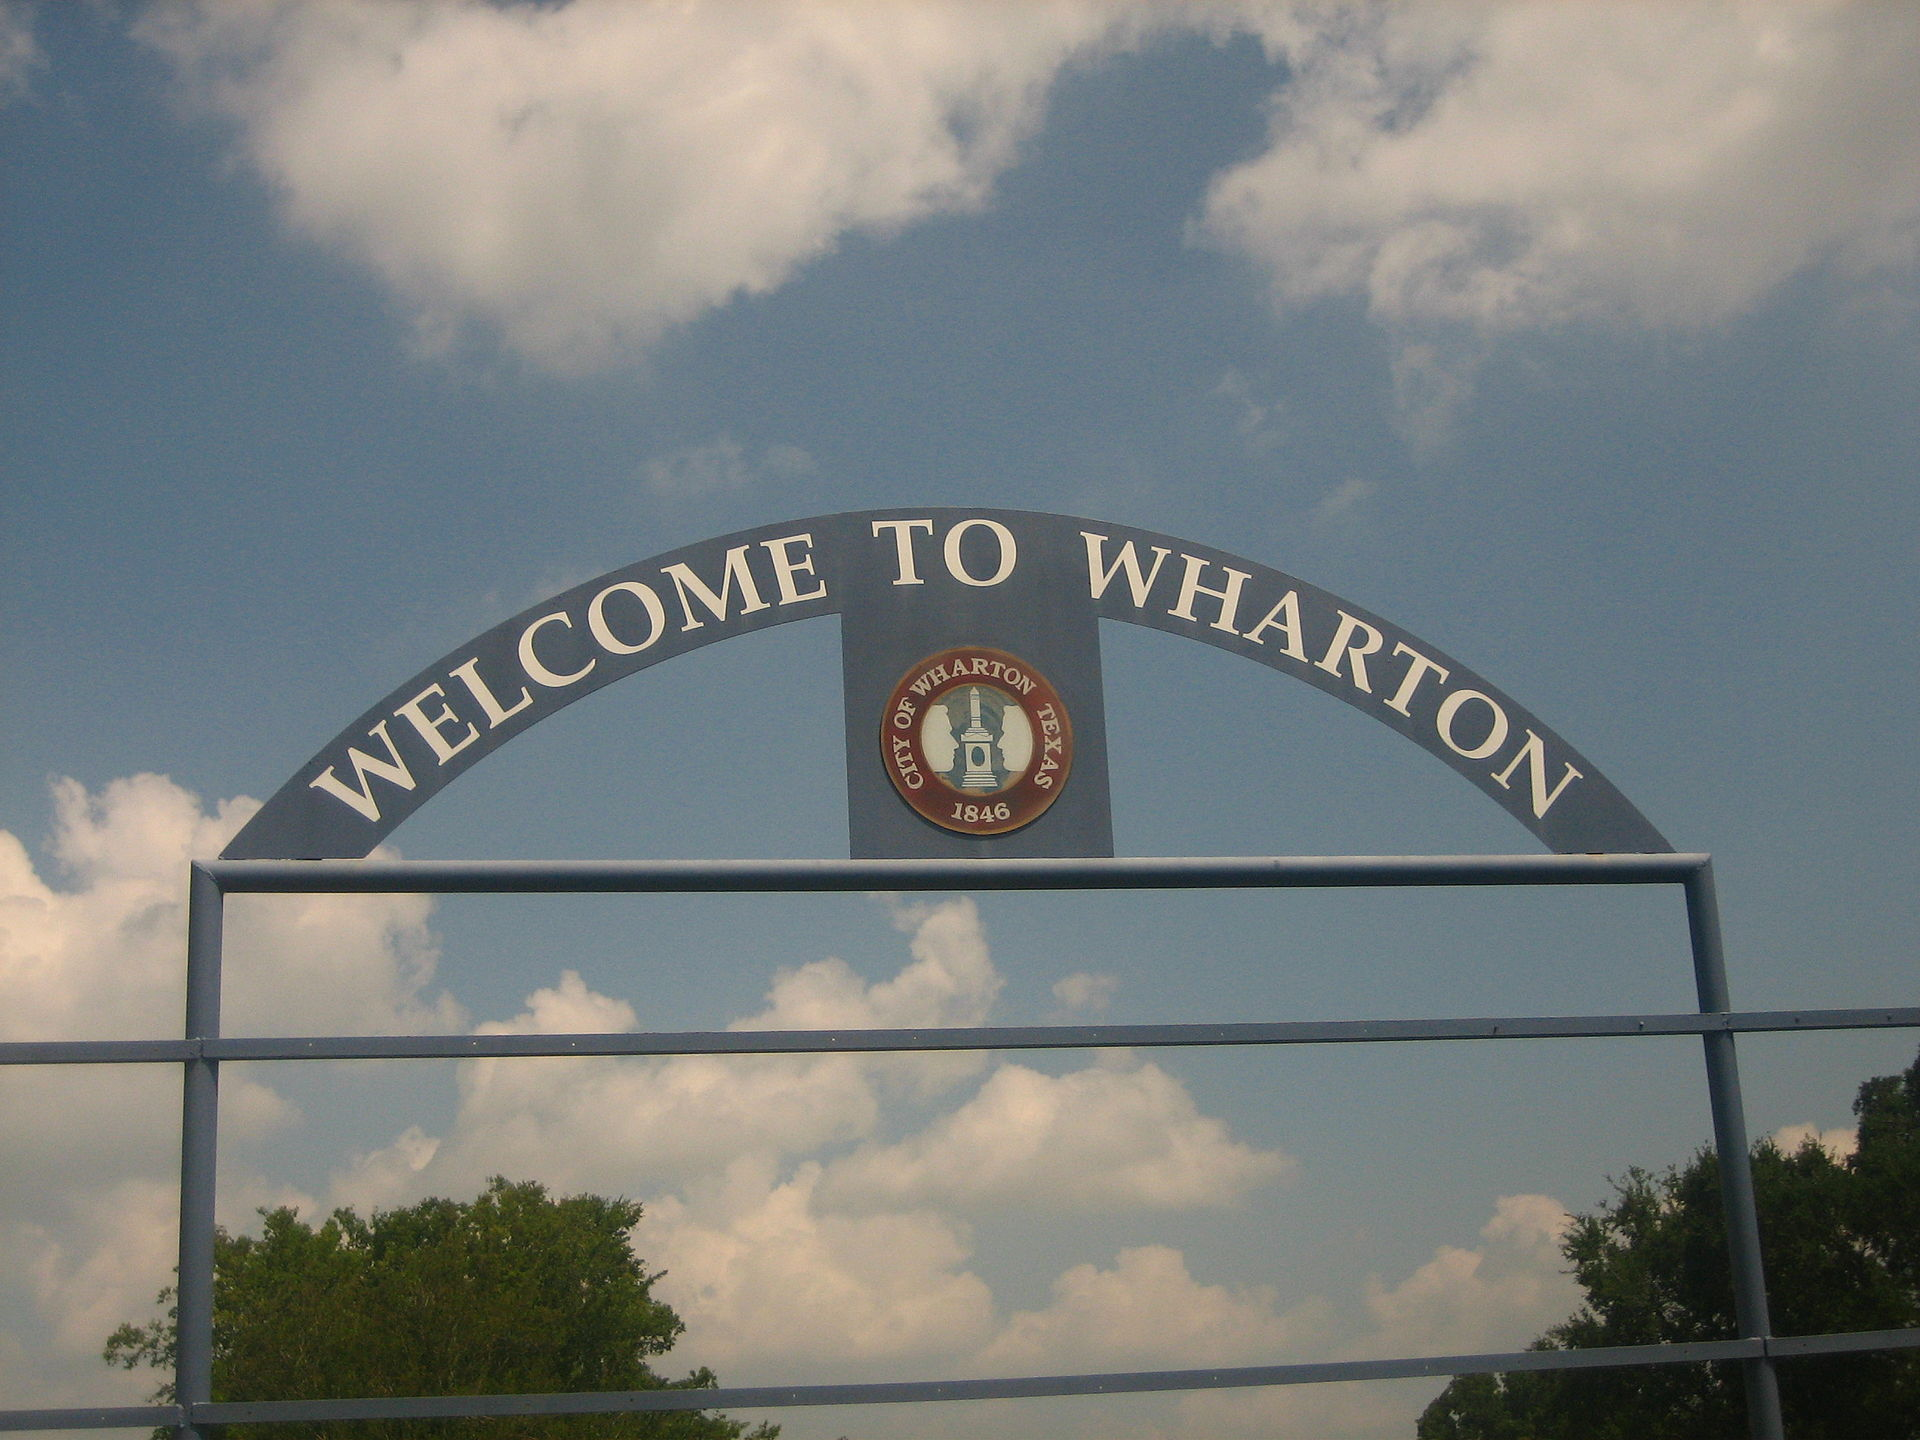 wharton county dating Mingle2 is the place to meet wharton county singles there are thousands of men and women looking for love or friendship in wharton county, texas our free online dating site & mobile apps are full of single women and men in wharton county looking for serious relationships, a little online flirtation, or new friends to go out with.